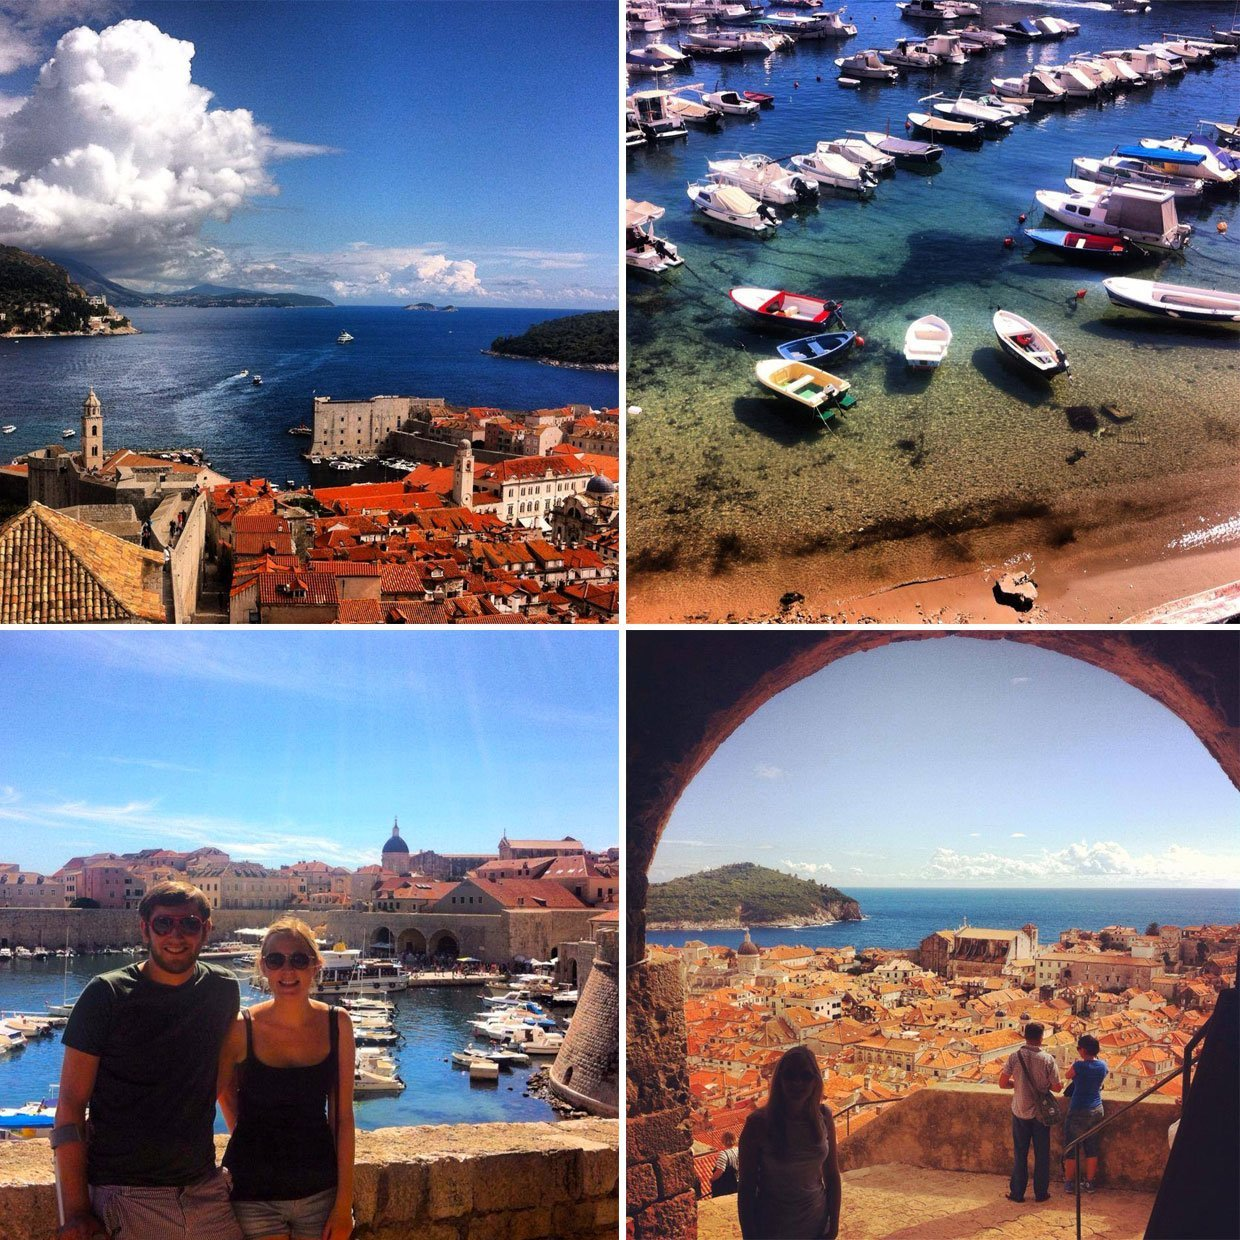 dubrovnik harbour and views